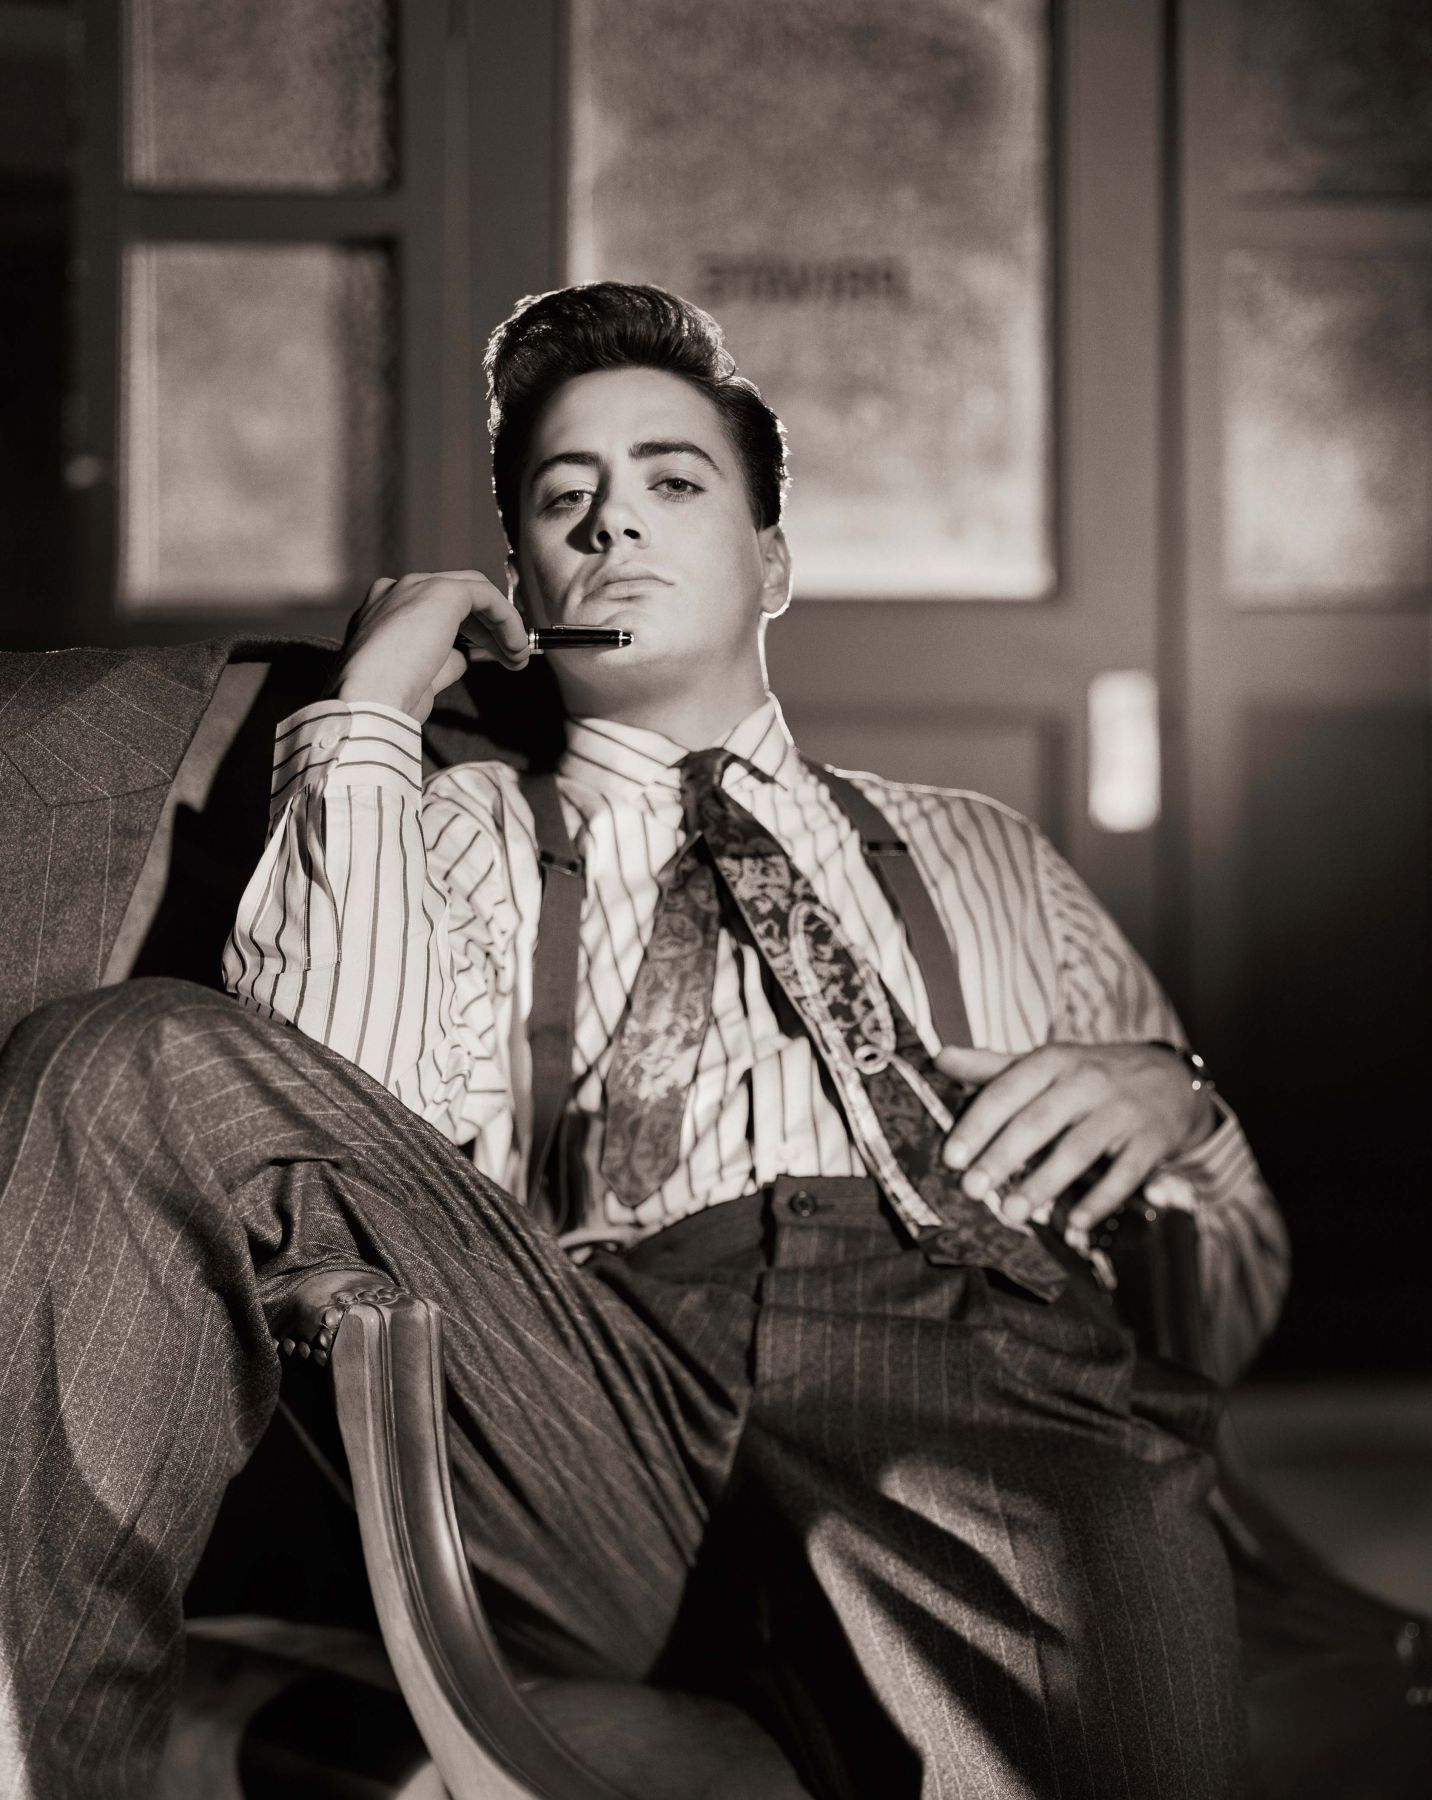 Robert Downey, Jr. - The Bad and the Beautiful, Series, Los Angeles, 1985, Archival Pigment Print